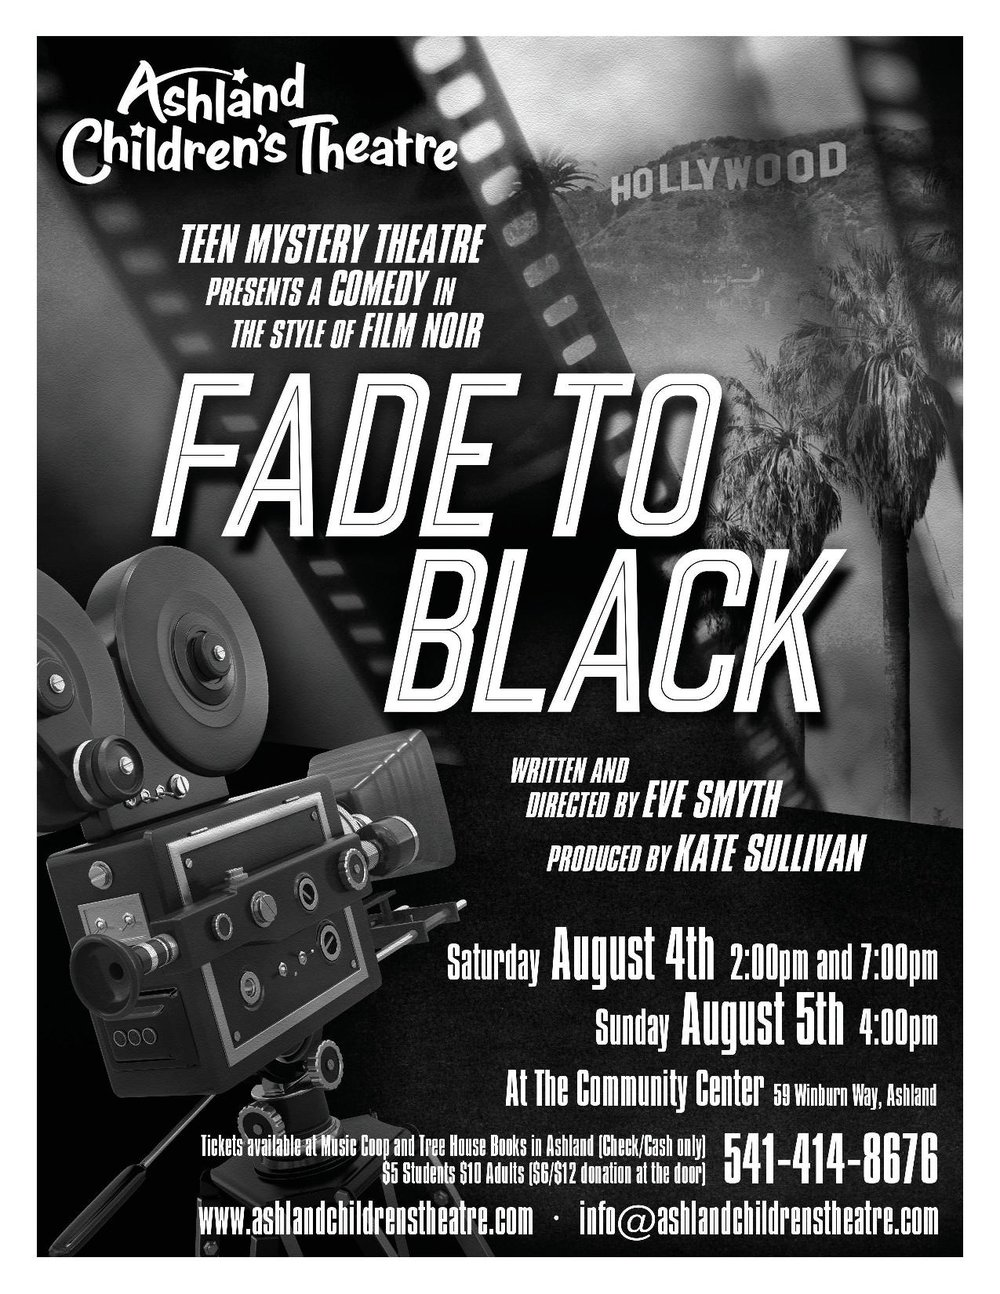 Fade to Black flyer 2018-page-001.jpg